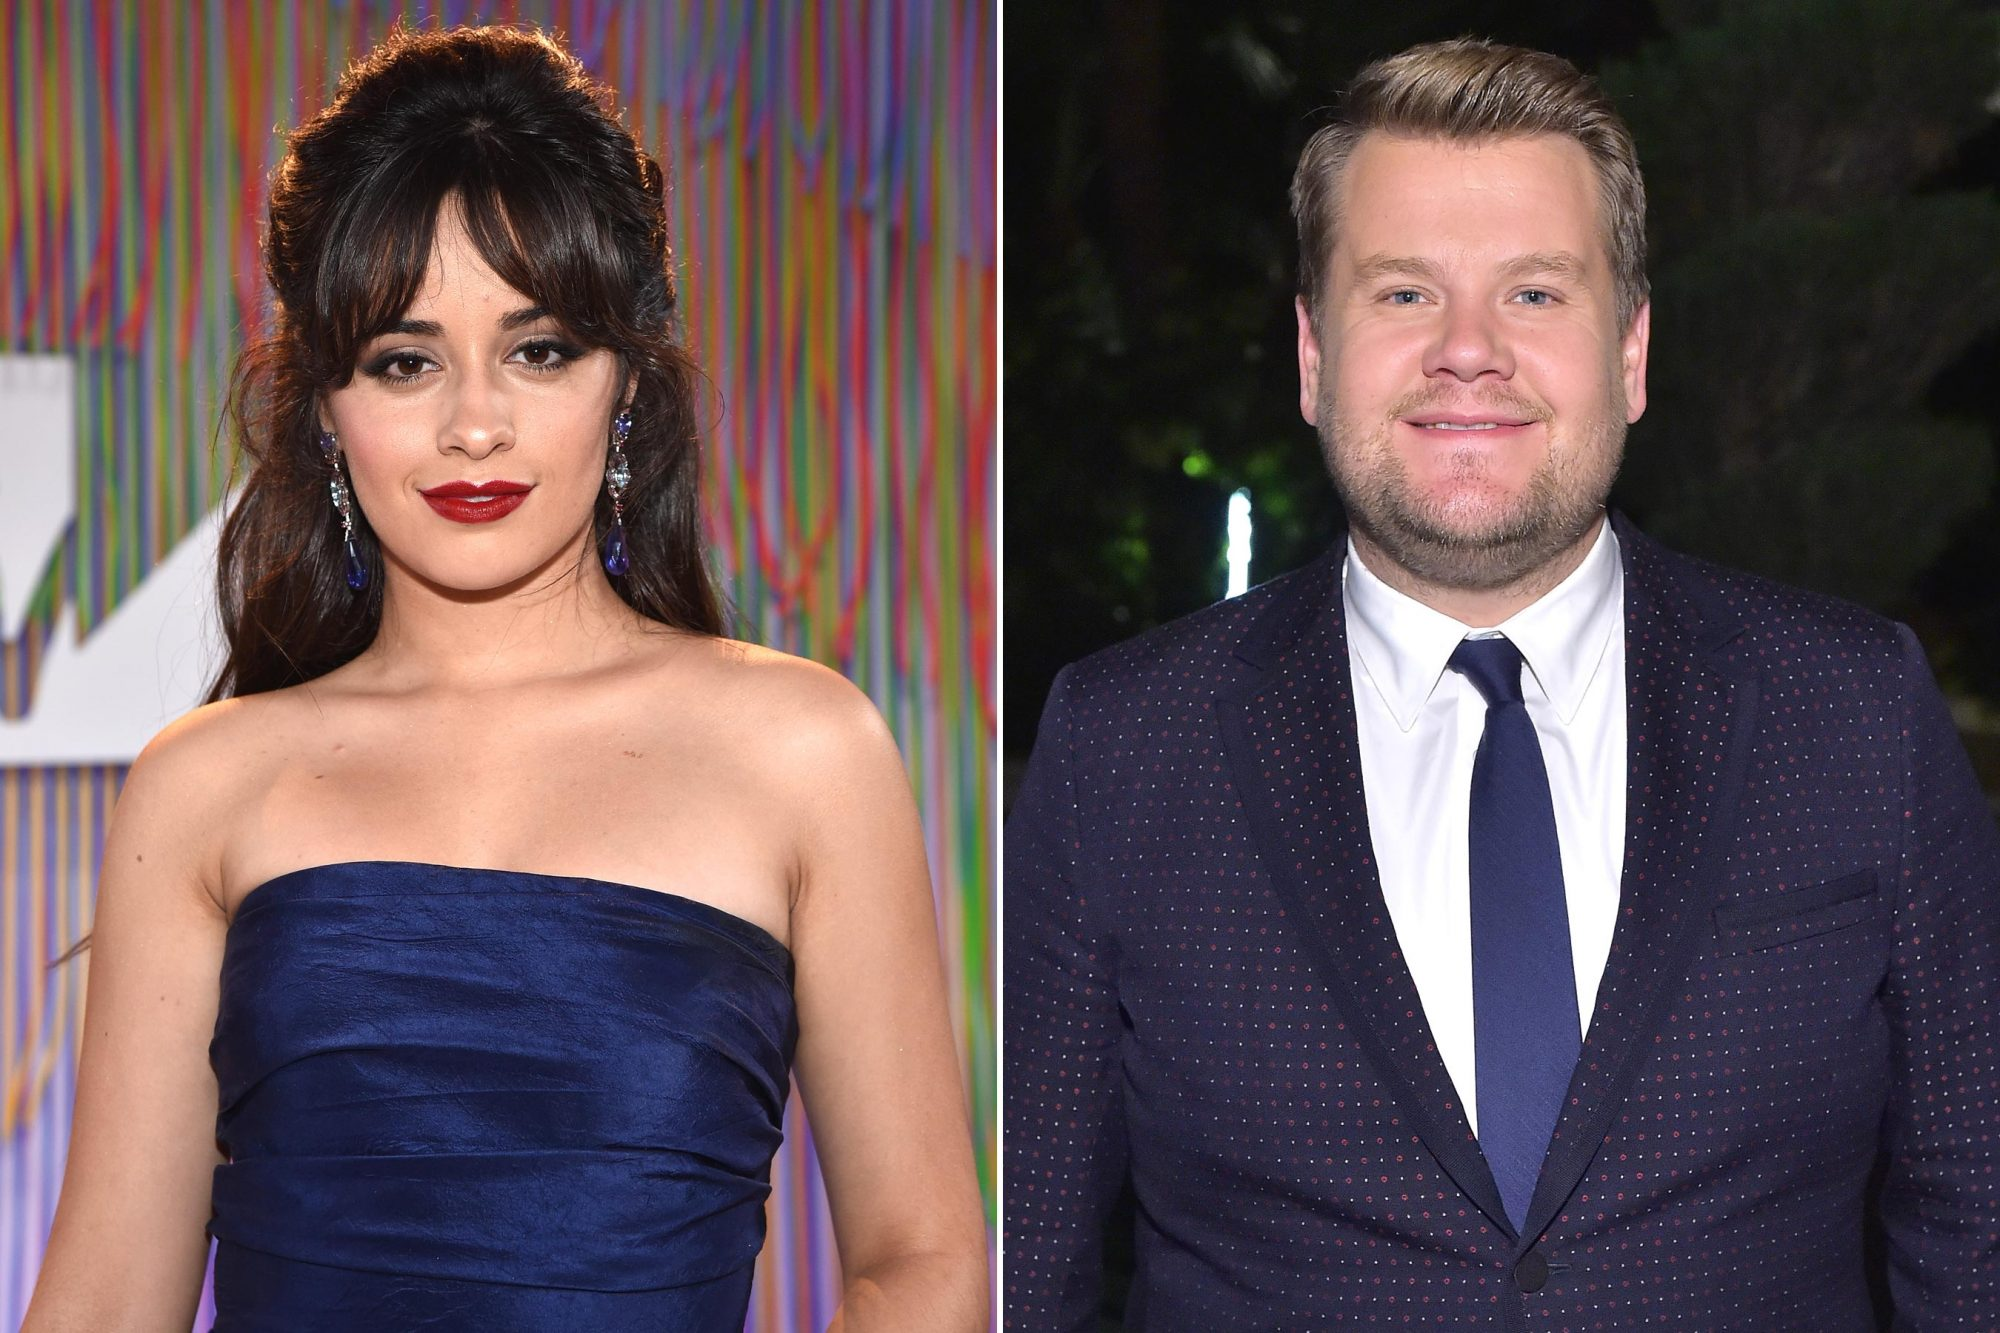 Camila-Cabello-James-Corden